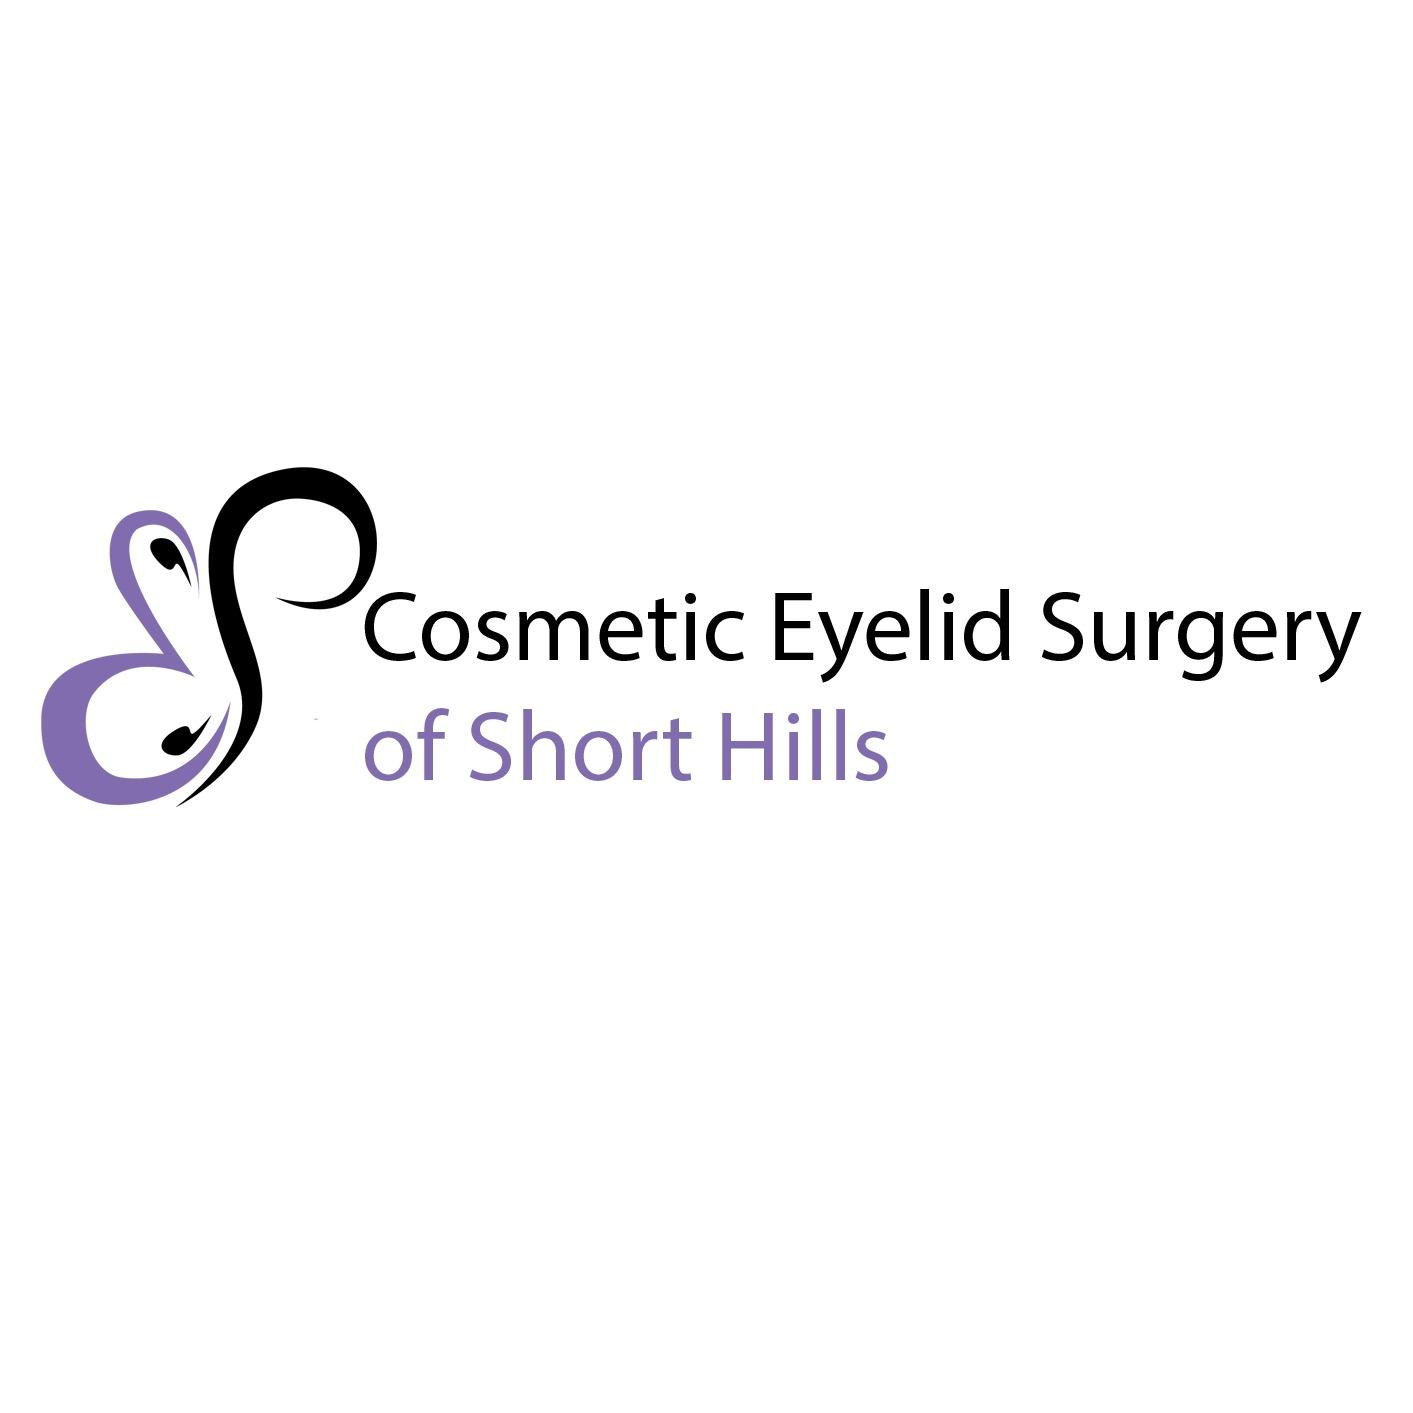 Cosmetic Eyelid Surgery of Short Hills